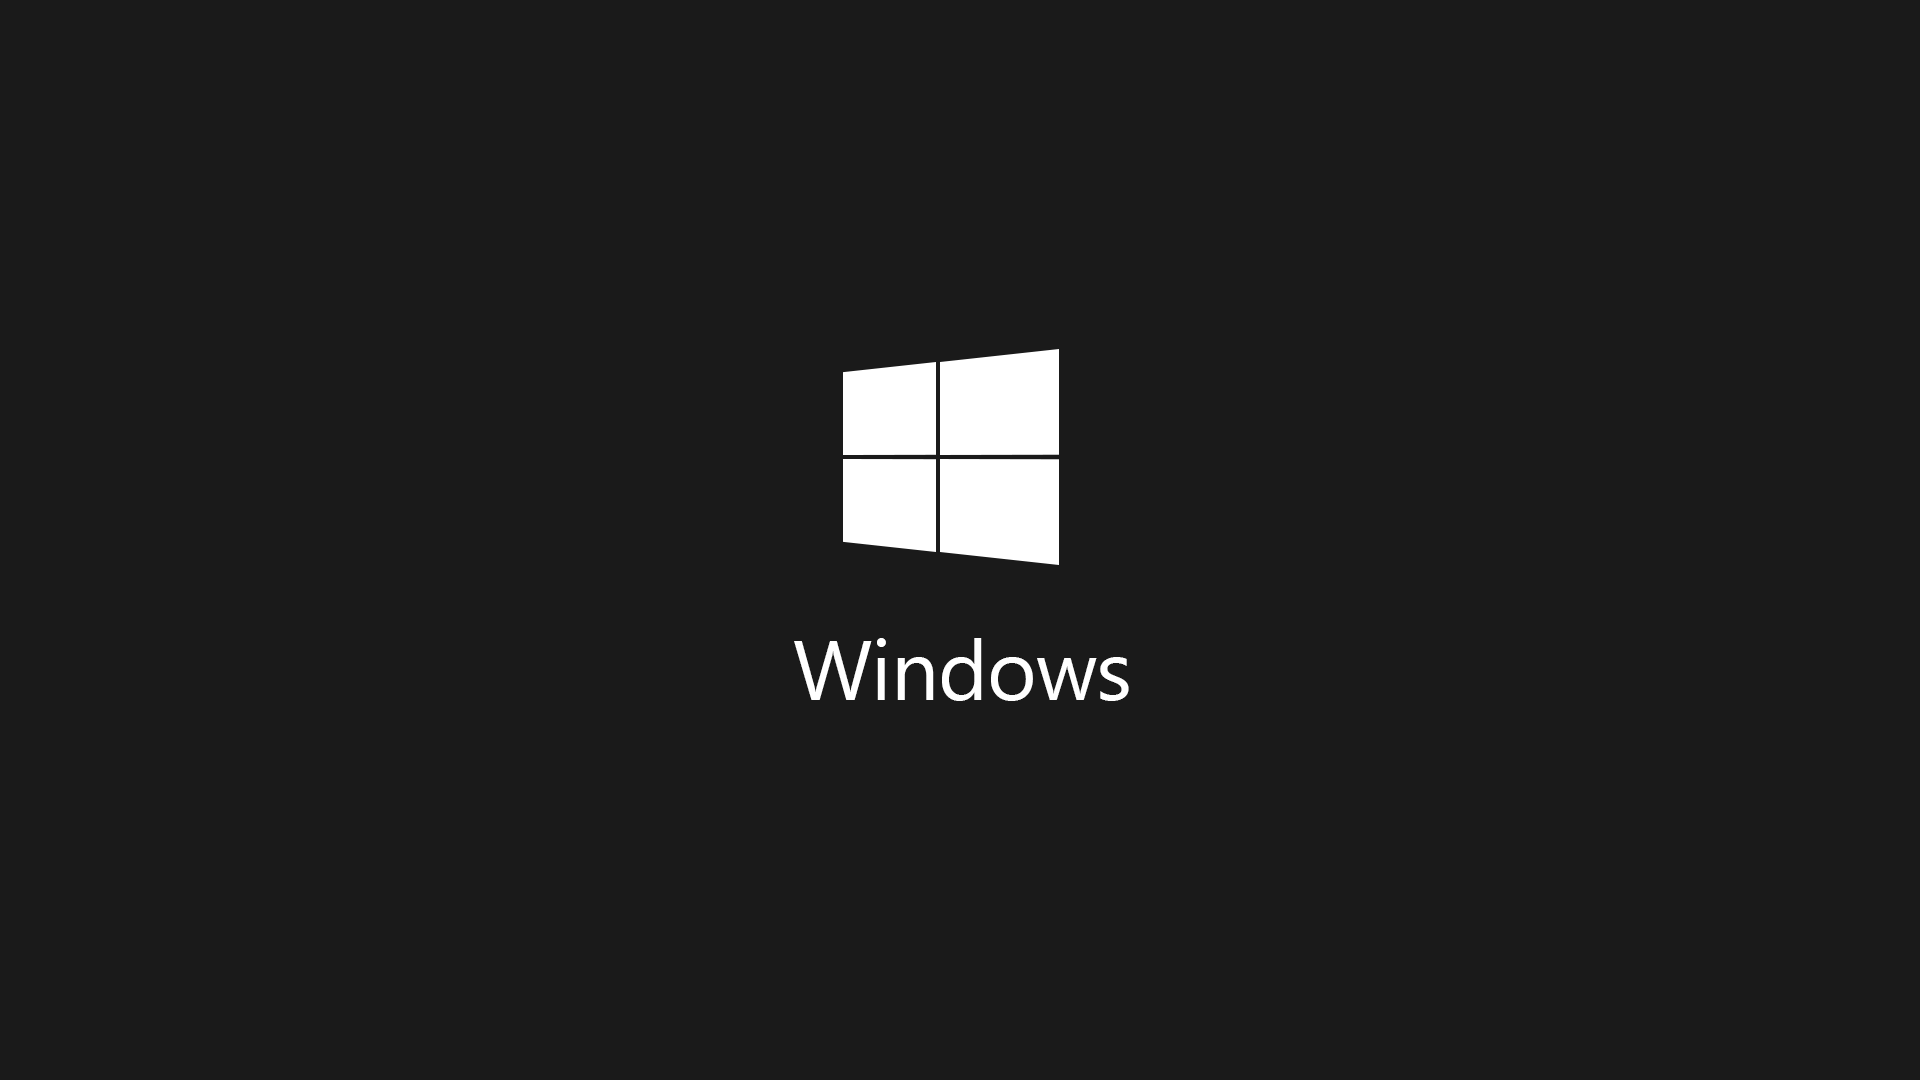 Windows Dark